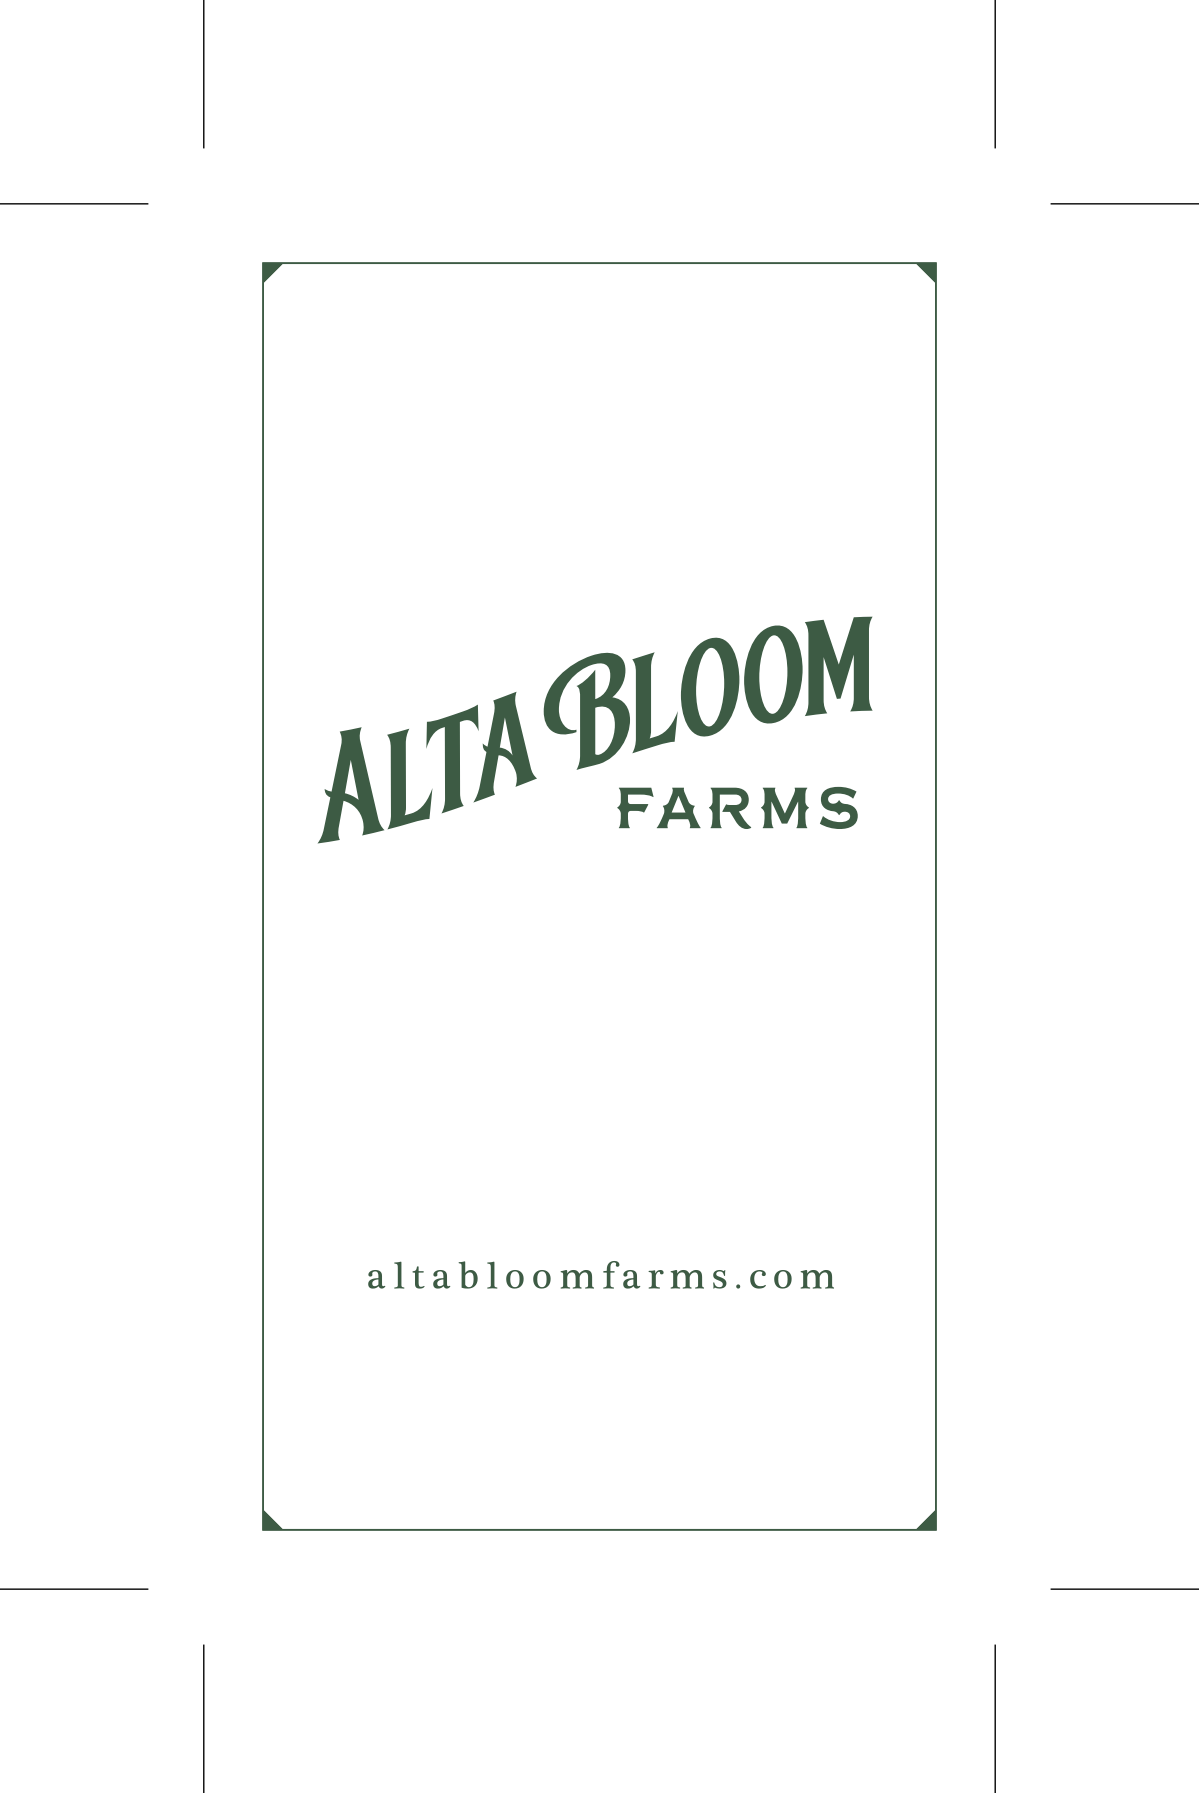 Business Cards: Alta Bloom Farms